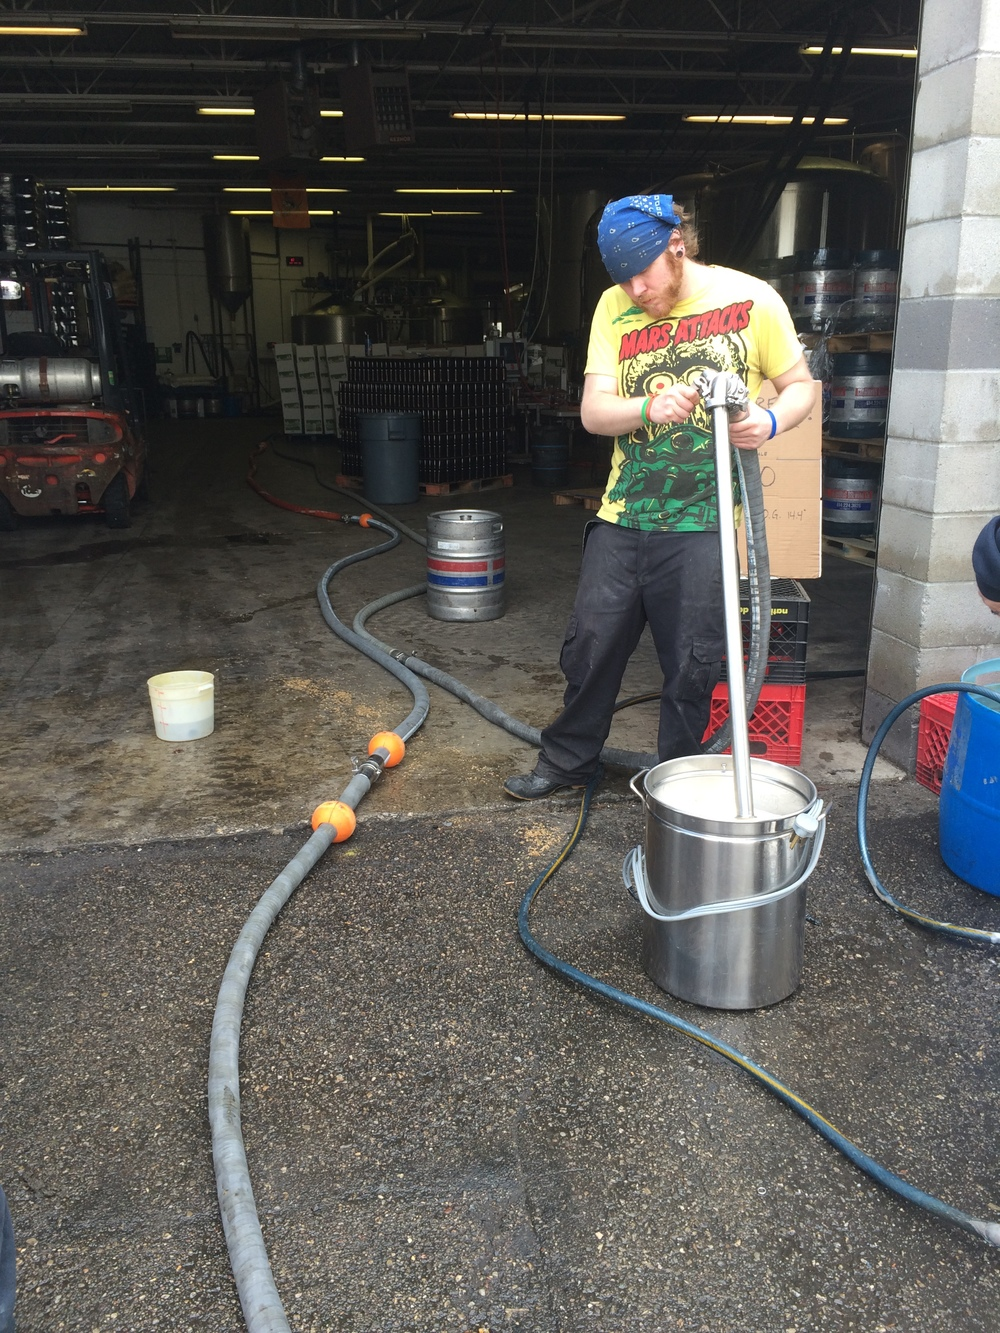 CBC dishing out free pale ale wort for Big Brew Day